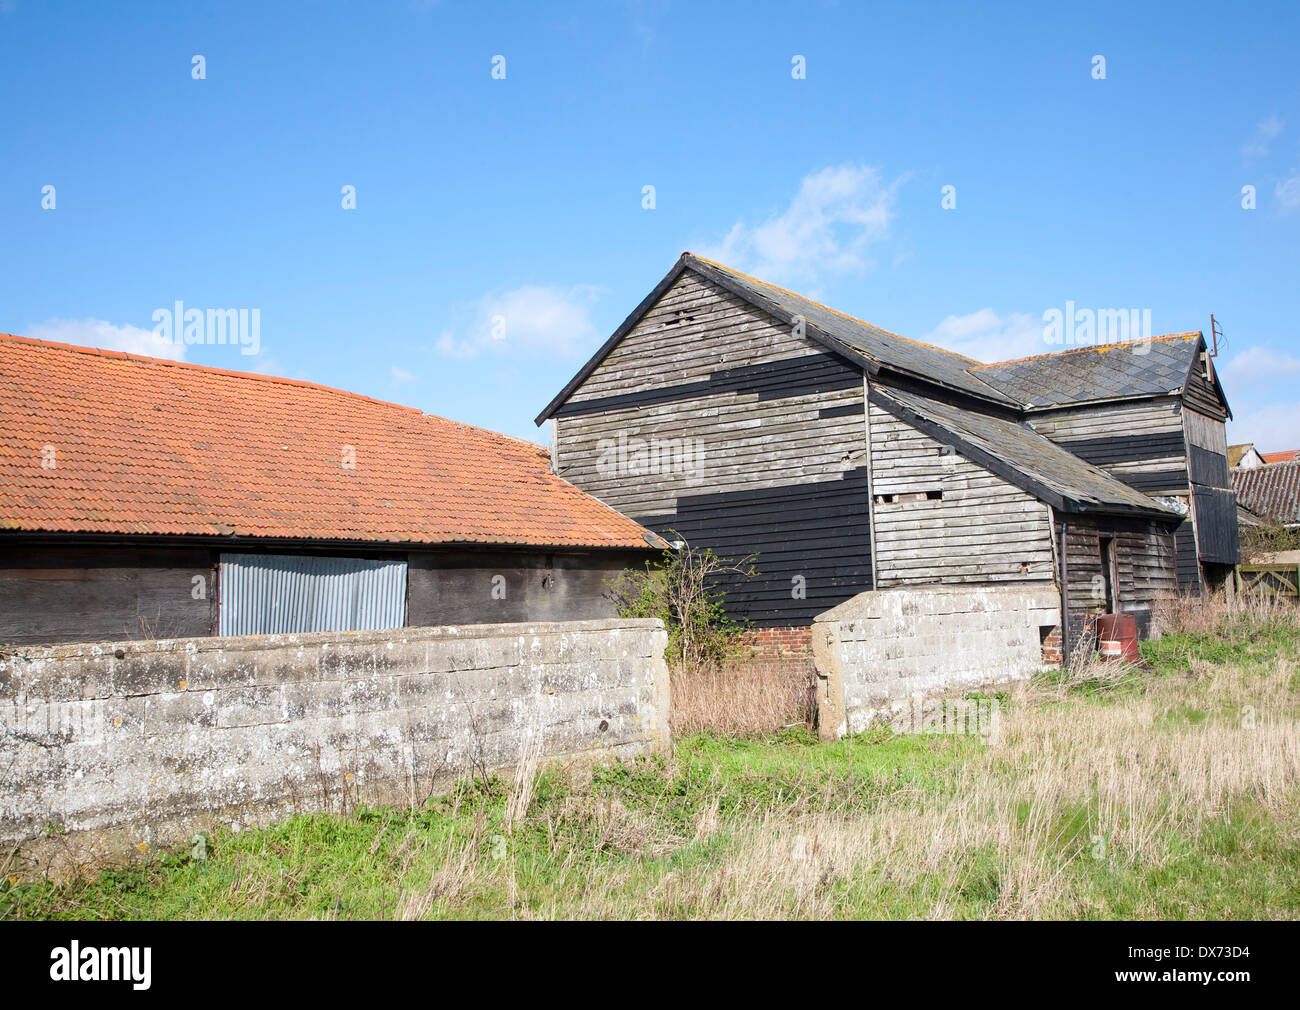 Old barns in Ramsholt, Suffolk, England - Stock Image